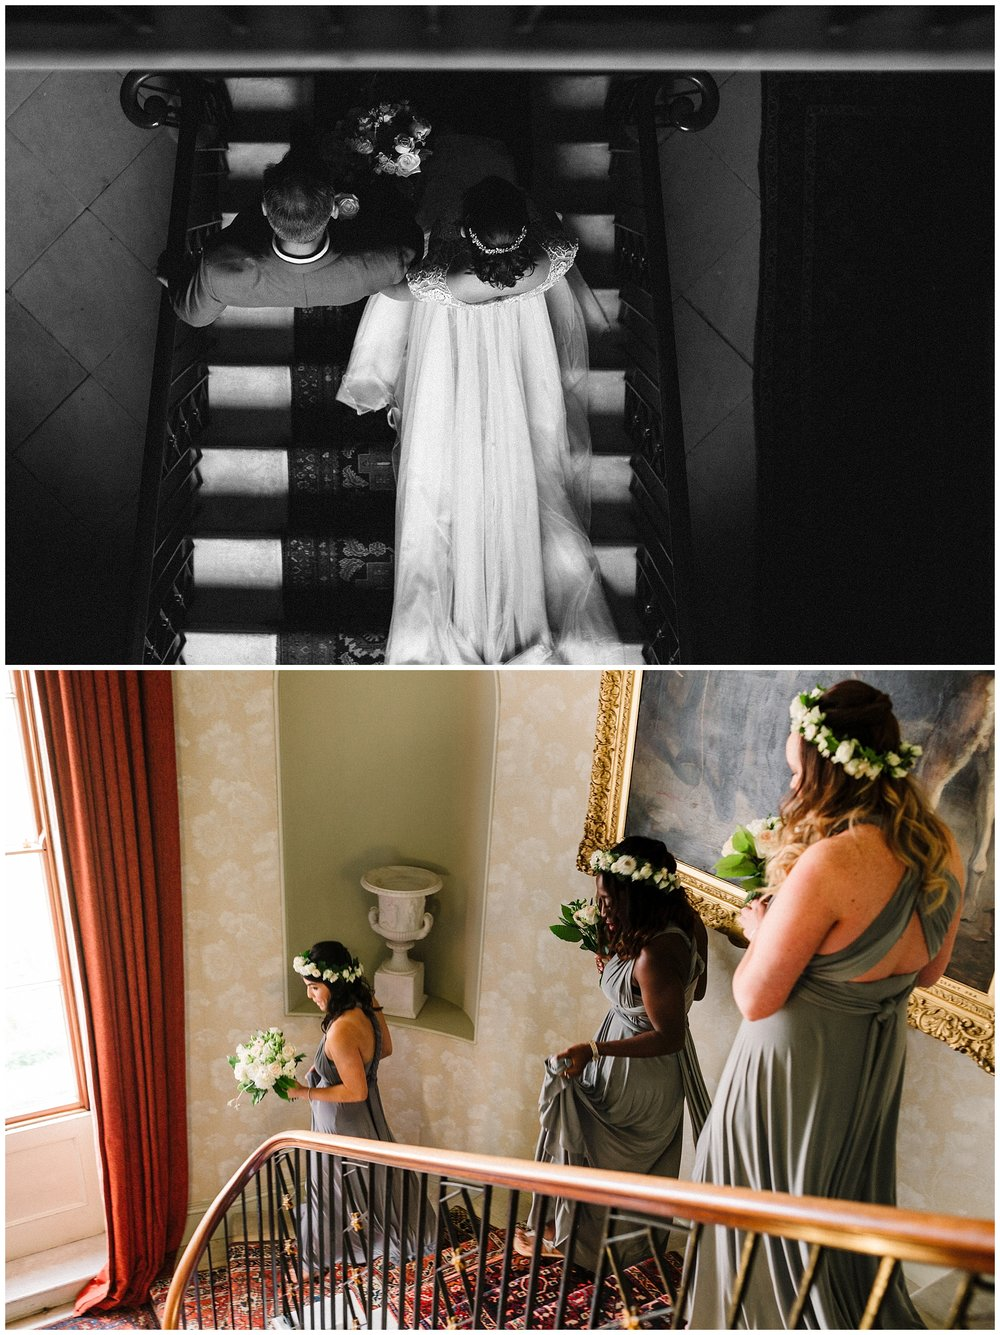 A bride walks down the stairs with her dad and her bridesmaids follow